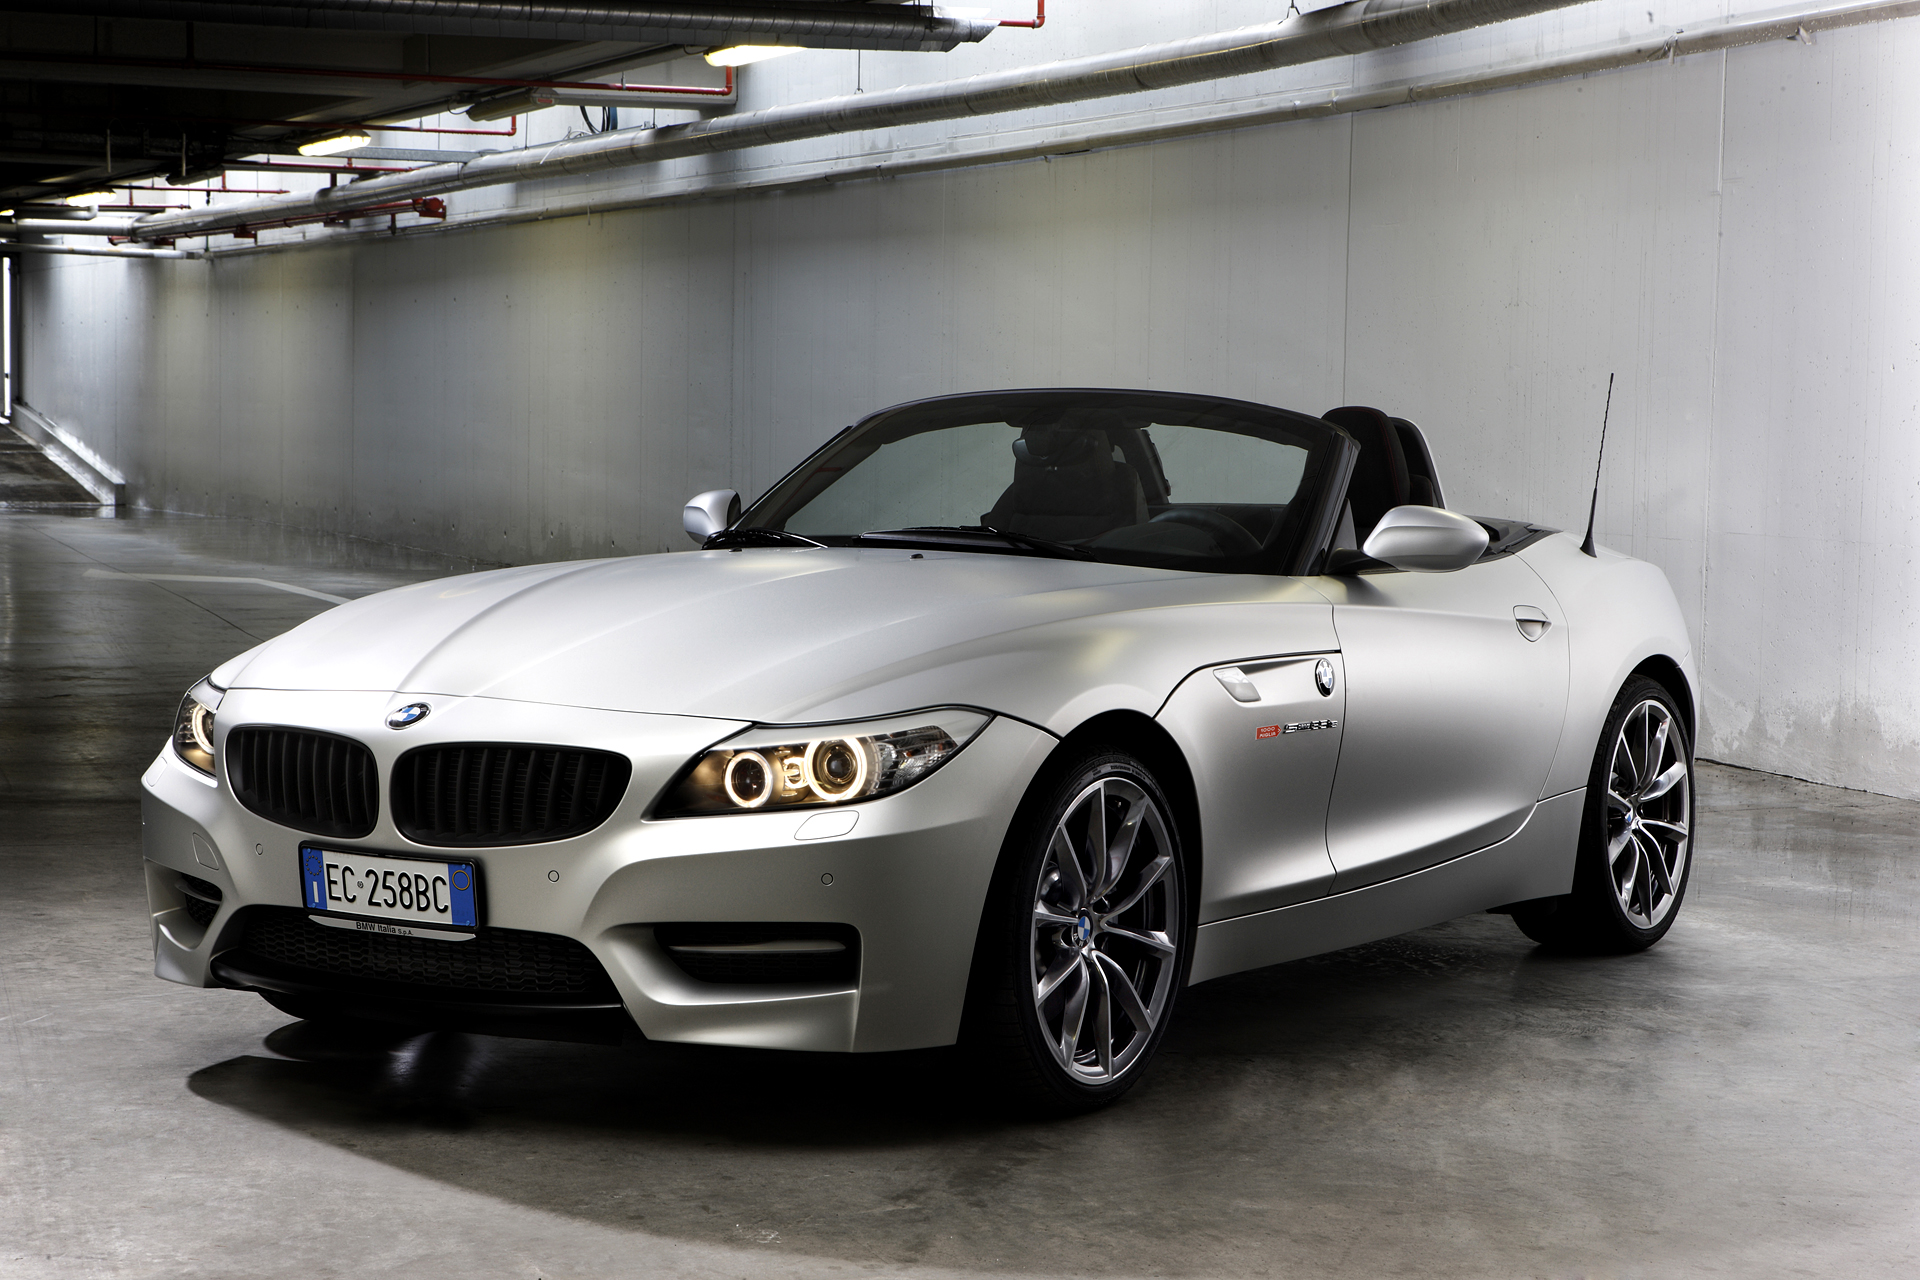 Bmw Z4 Sdrive35is Mille Miglia 2010 Edition